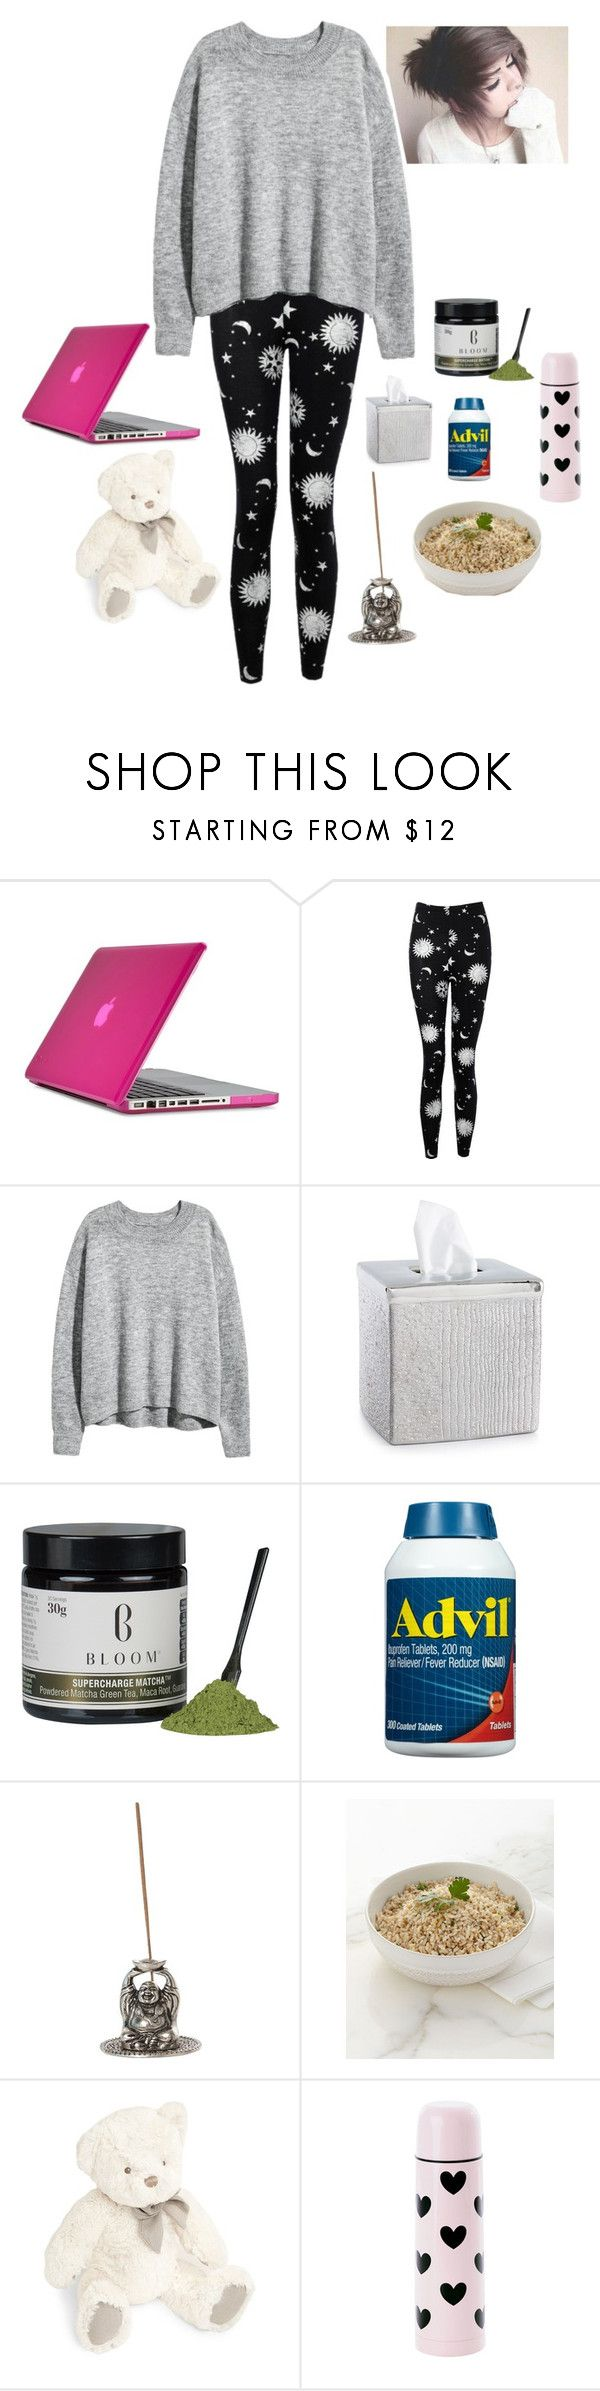 """""""Sick Day.."""" by grey-daray ❤ liked on Polyvore featuring Speck, Boohoo, H&M, Croscill, Juliska, Gund and Miss Étoile"""